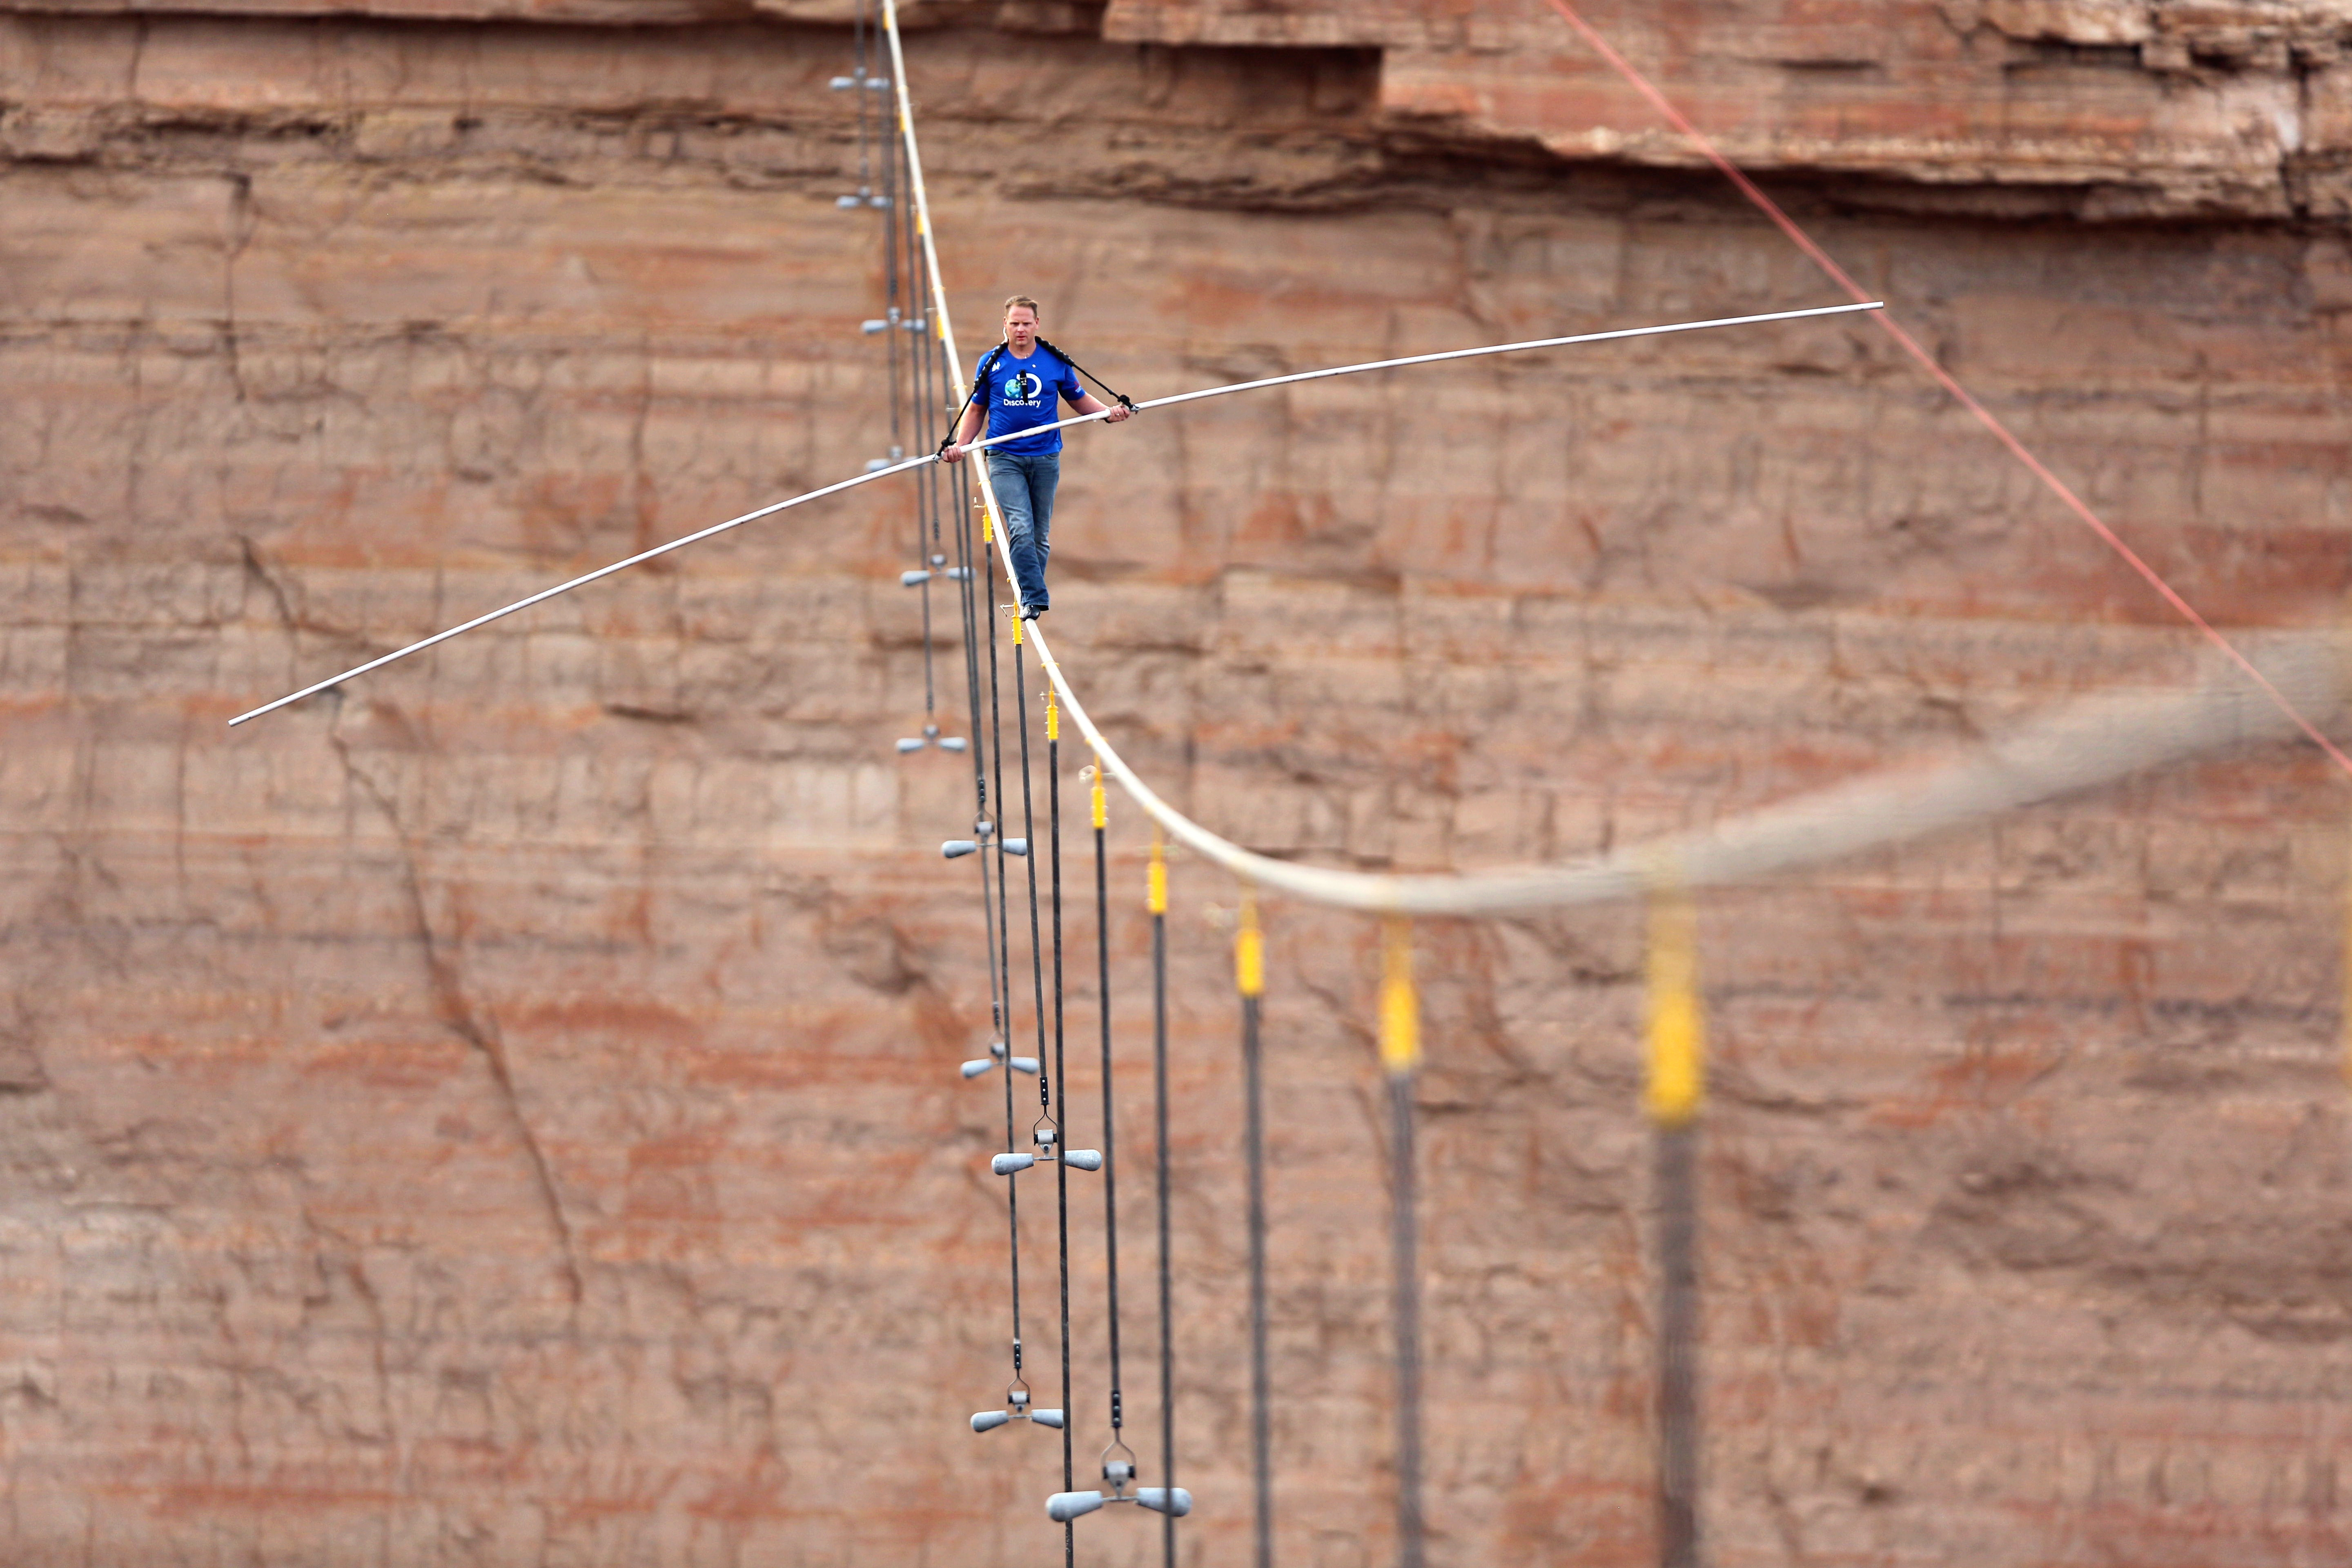 The interest generated by Nik Wallenda's walk at the Grand Canyon can only help the popularity of an attraction in Niagara Falls. (AP photo)